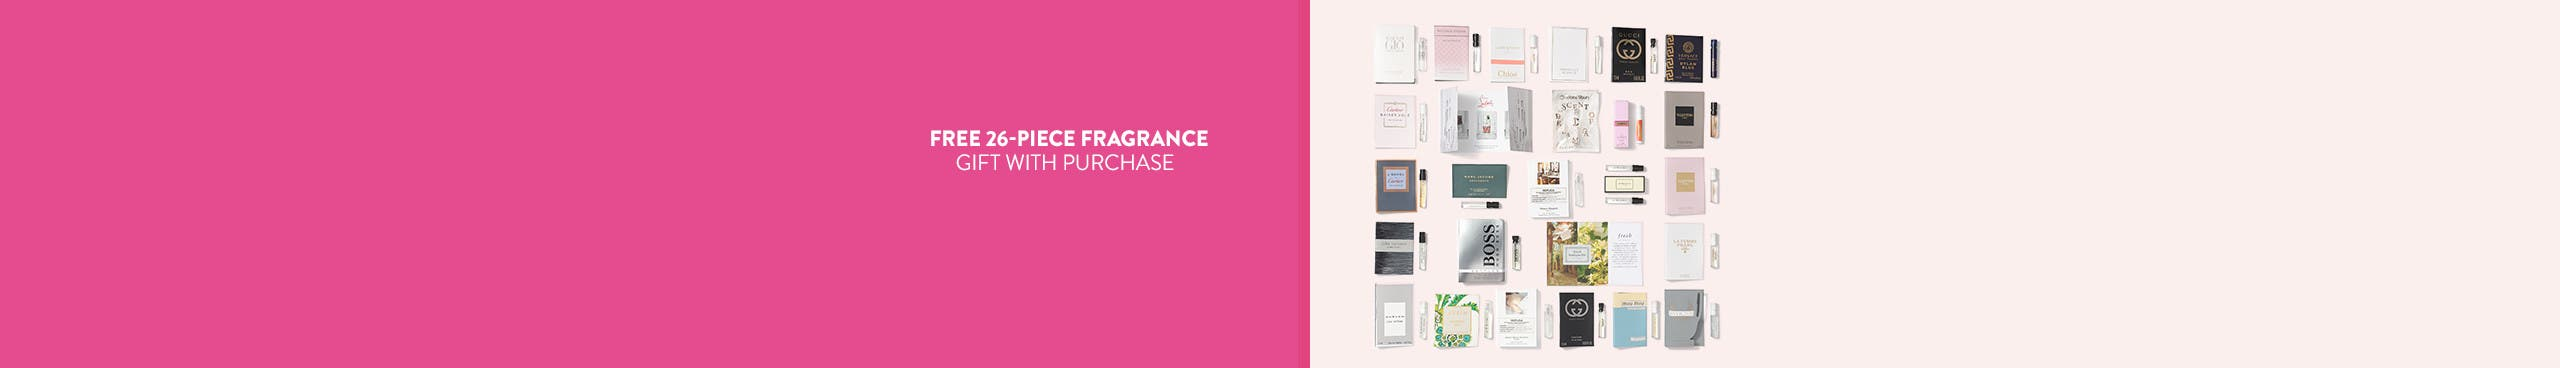 Free gift with $85 women's or men's fragrance purchase.